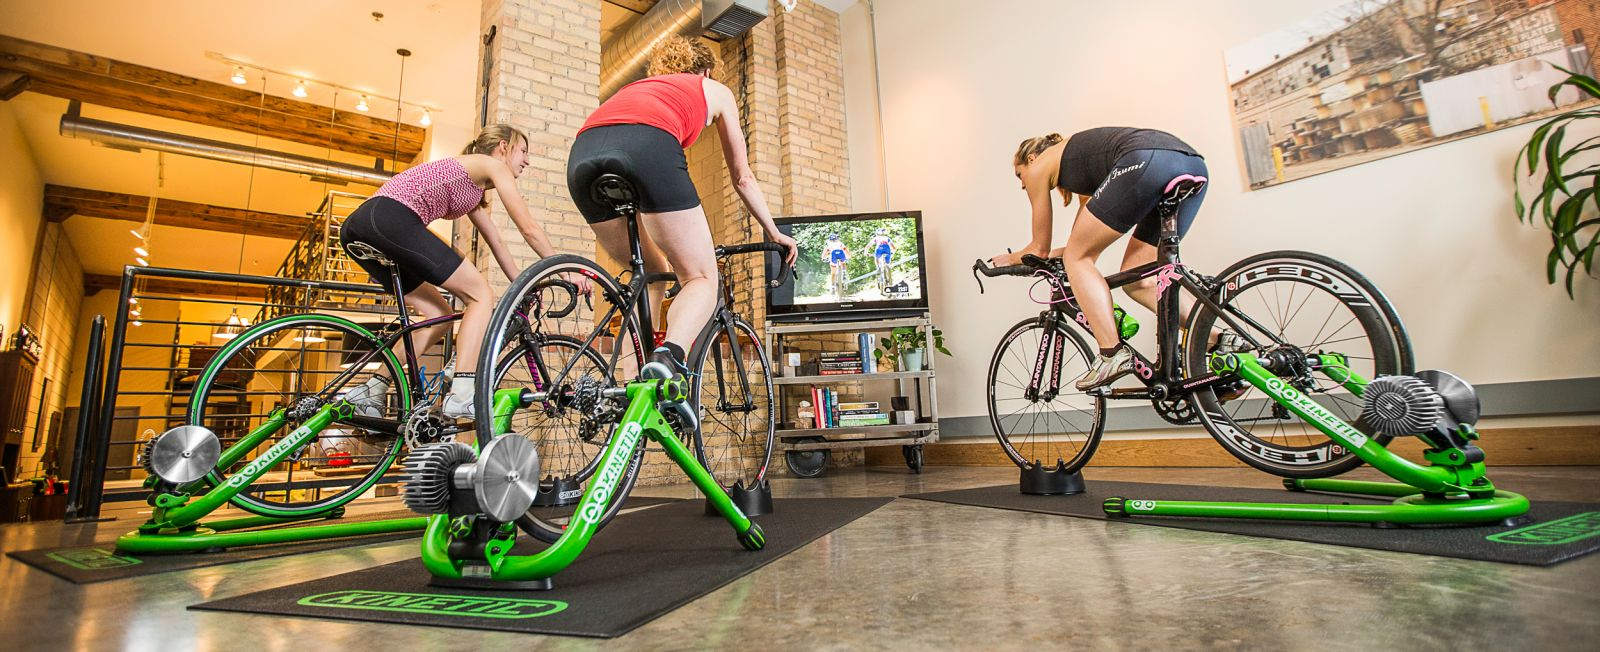 Kinetic - Indoor Bike Trainers, Interactive Smart Trainers